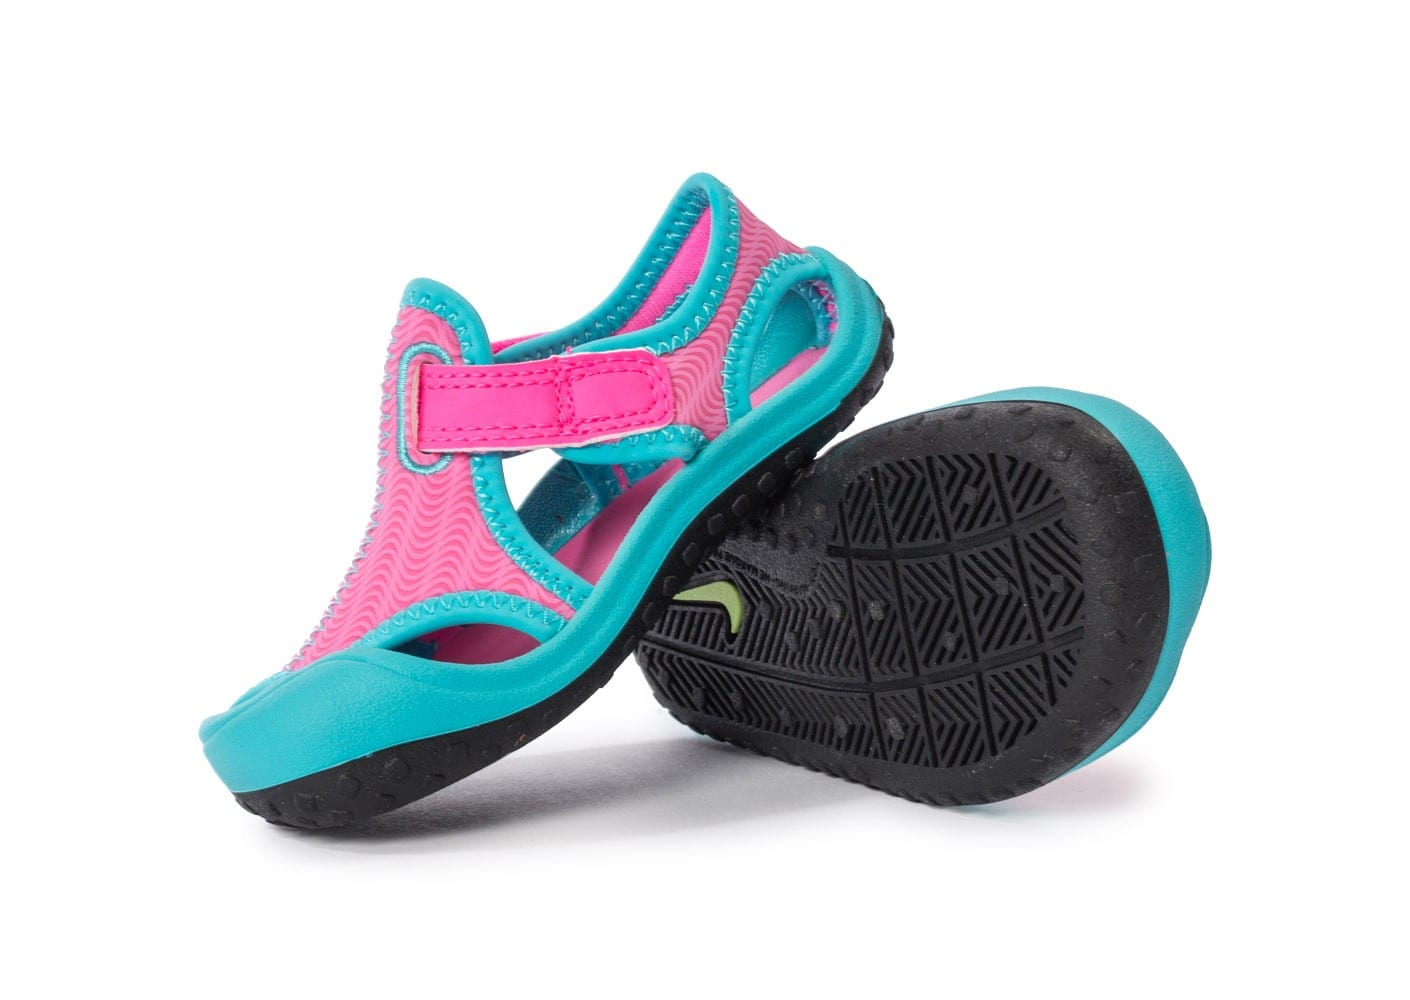 the best attitude 9f373 7c3b8 ... chaussures nike sunray protect bebe rose vue dessous semelle